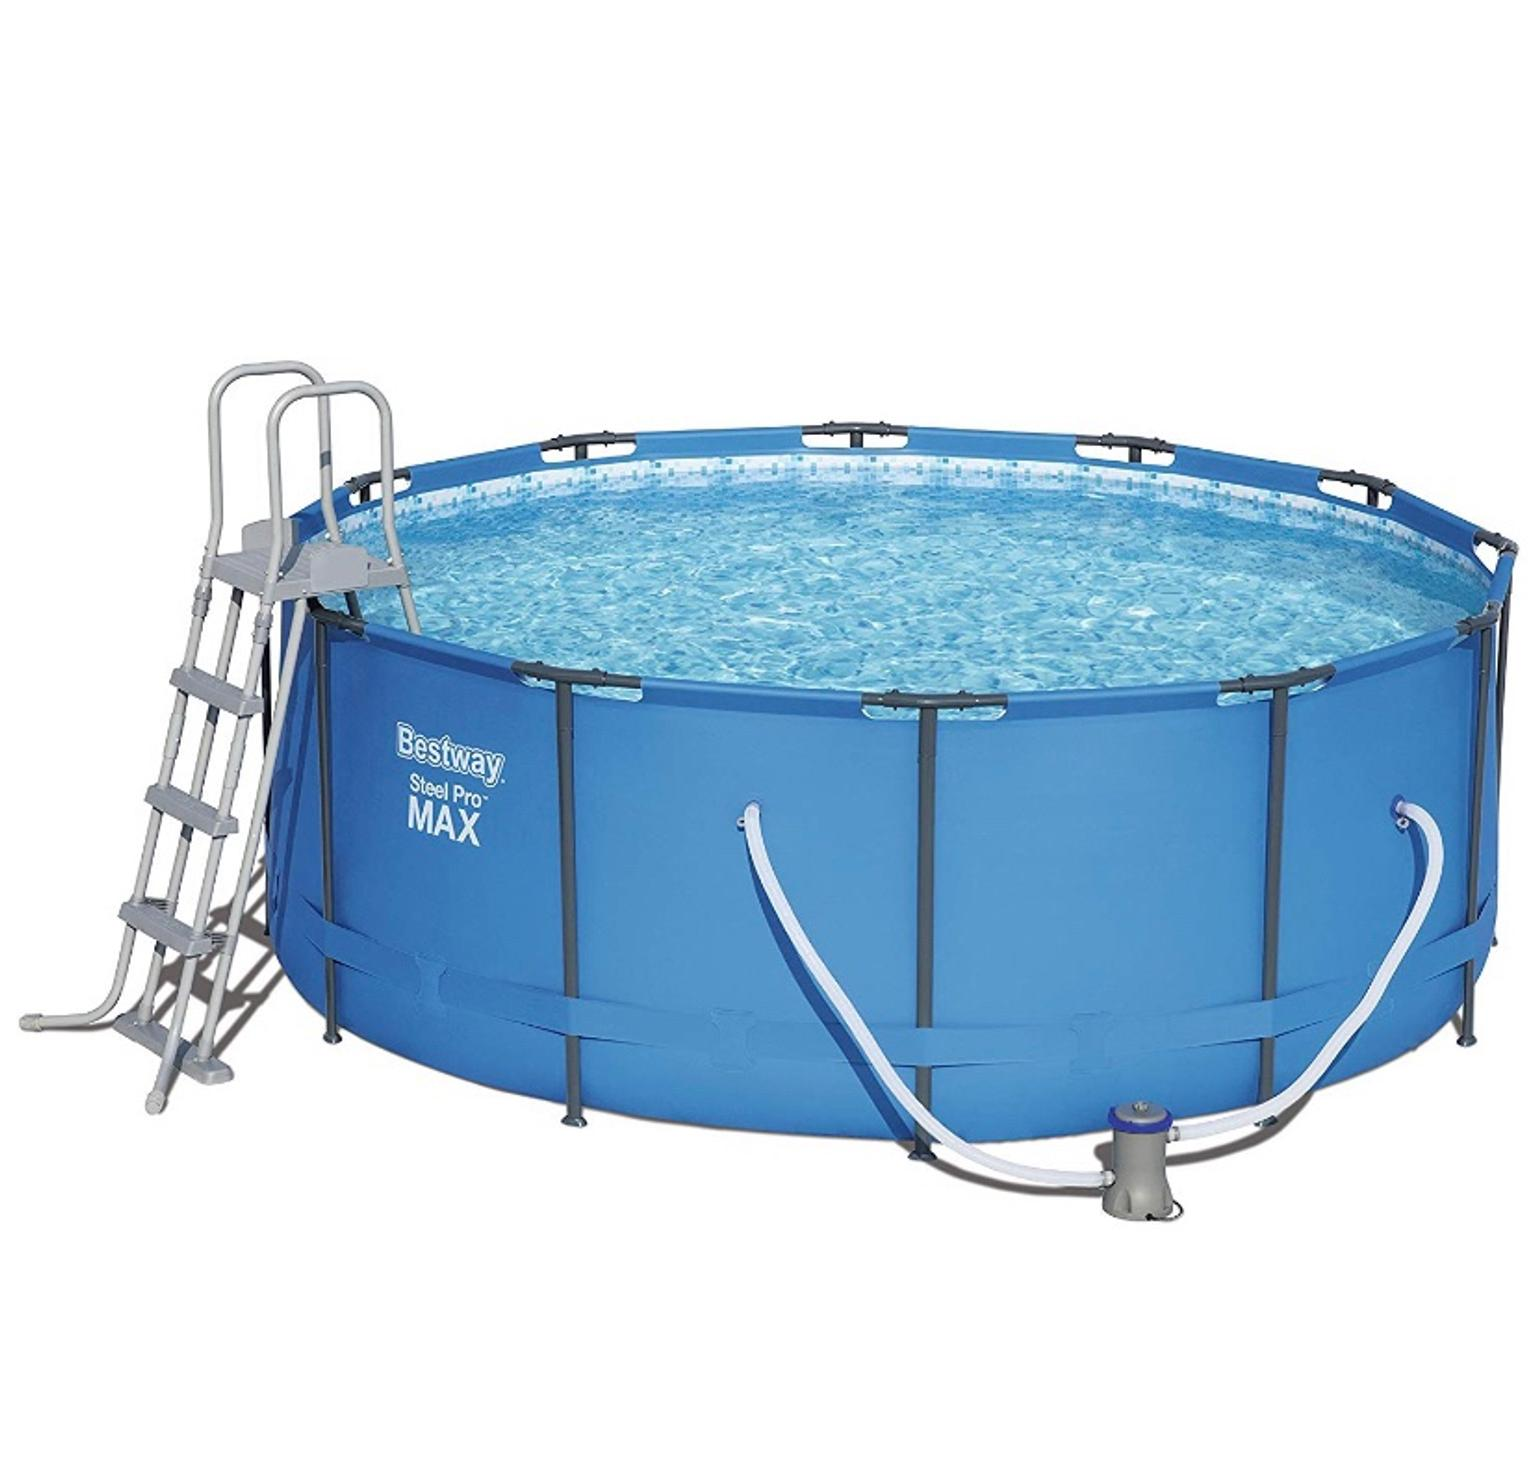 Pool Komplettset Amazon Bestway Steel Pro Frame Pool 366 X 122cm Blau